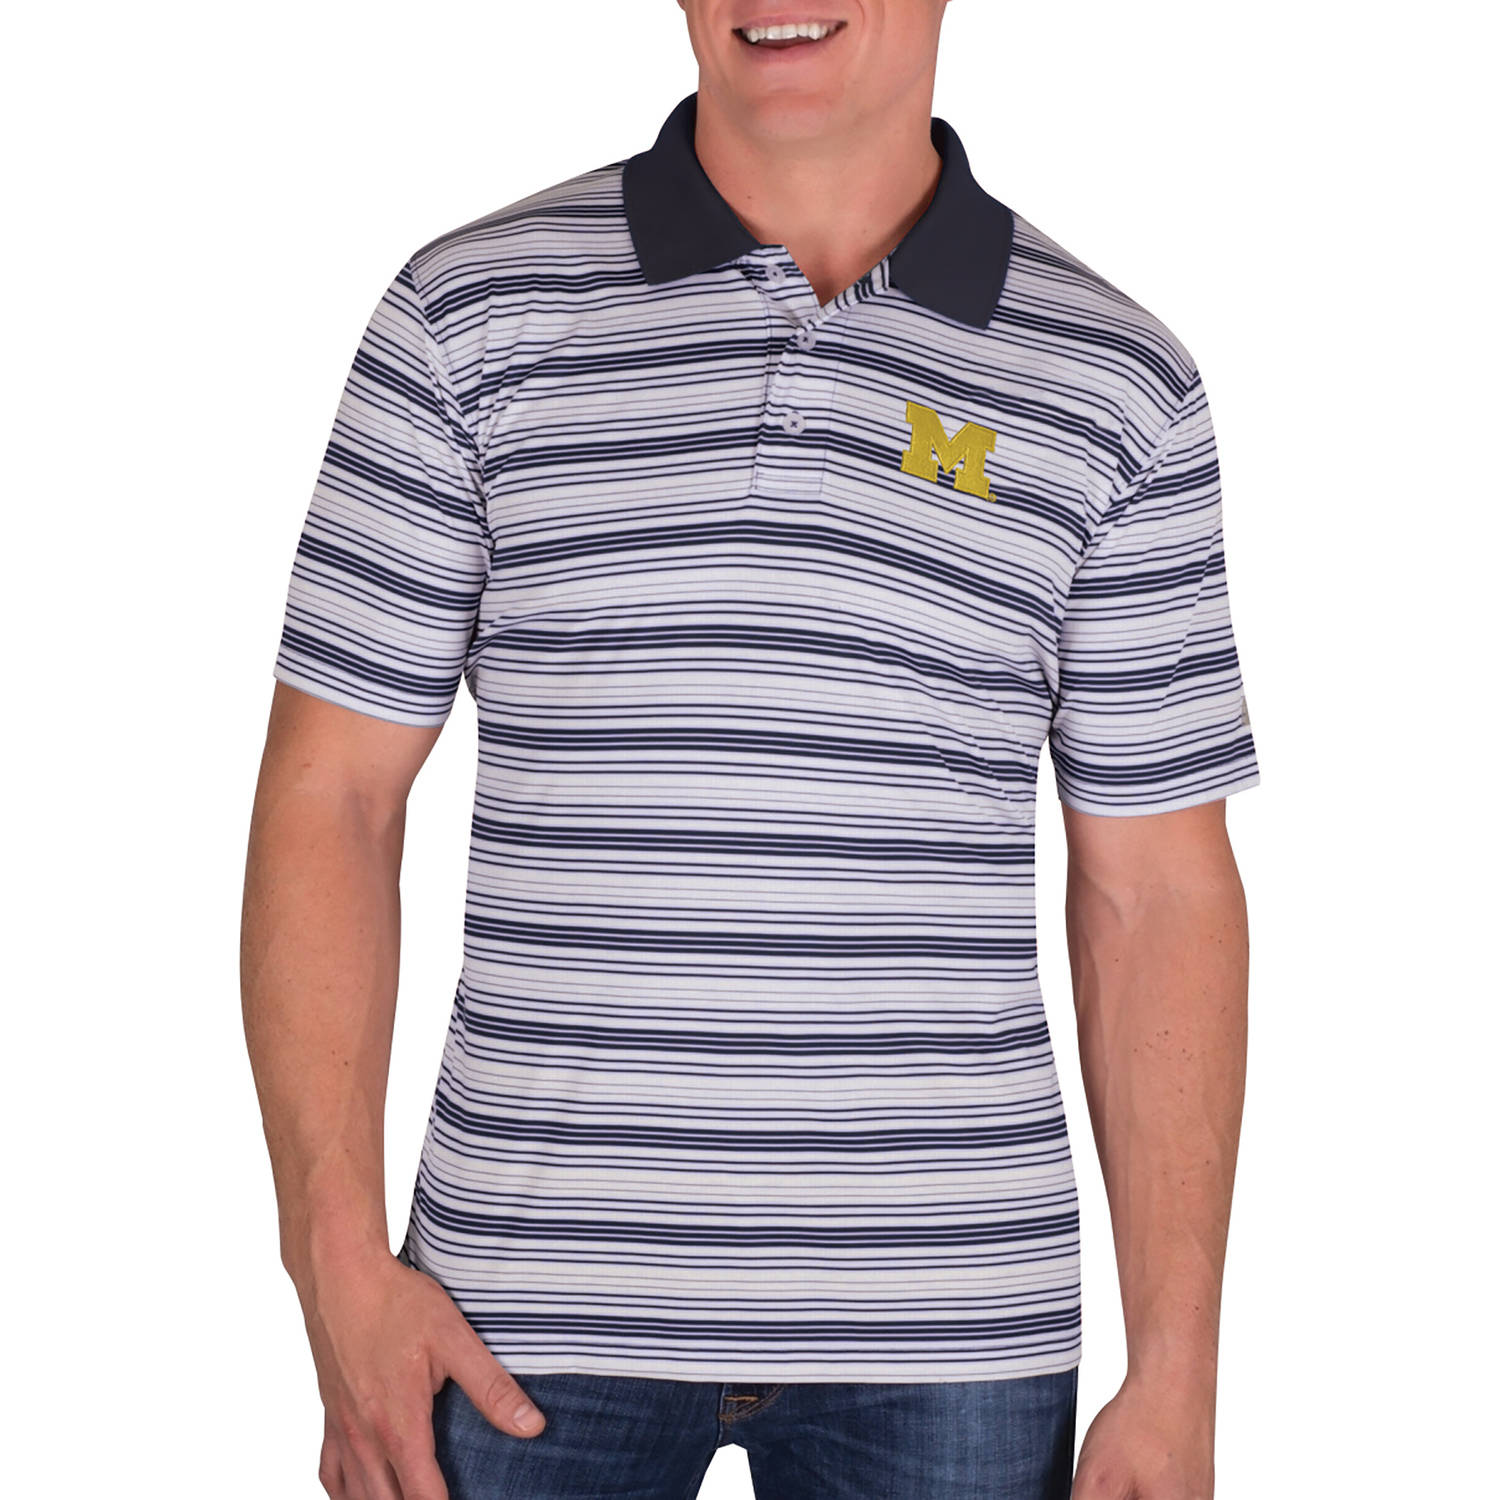 NCAA Michigan Wolverines Men's Classic-Fit Striped Polo Shirt